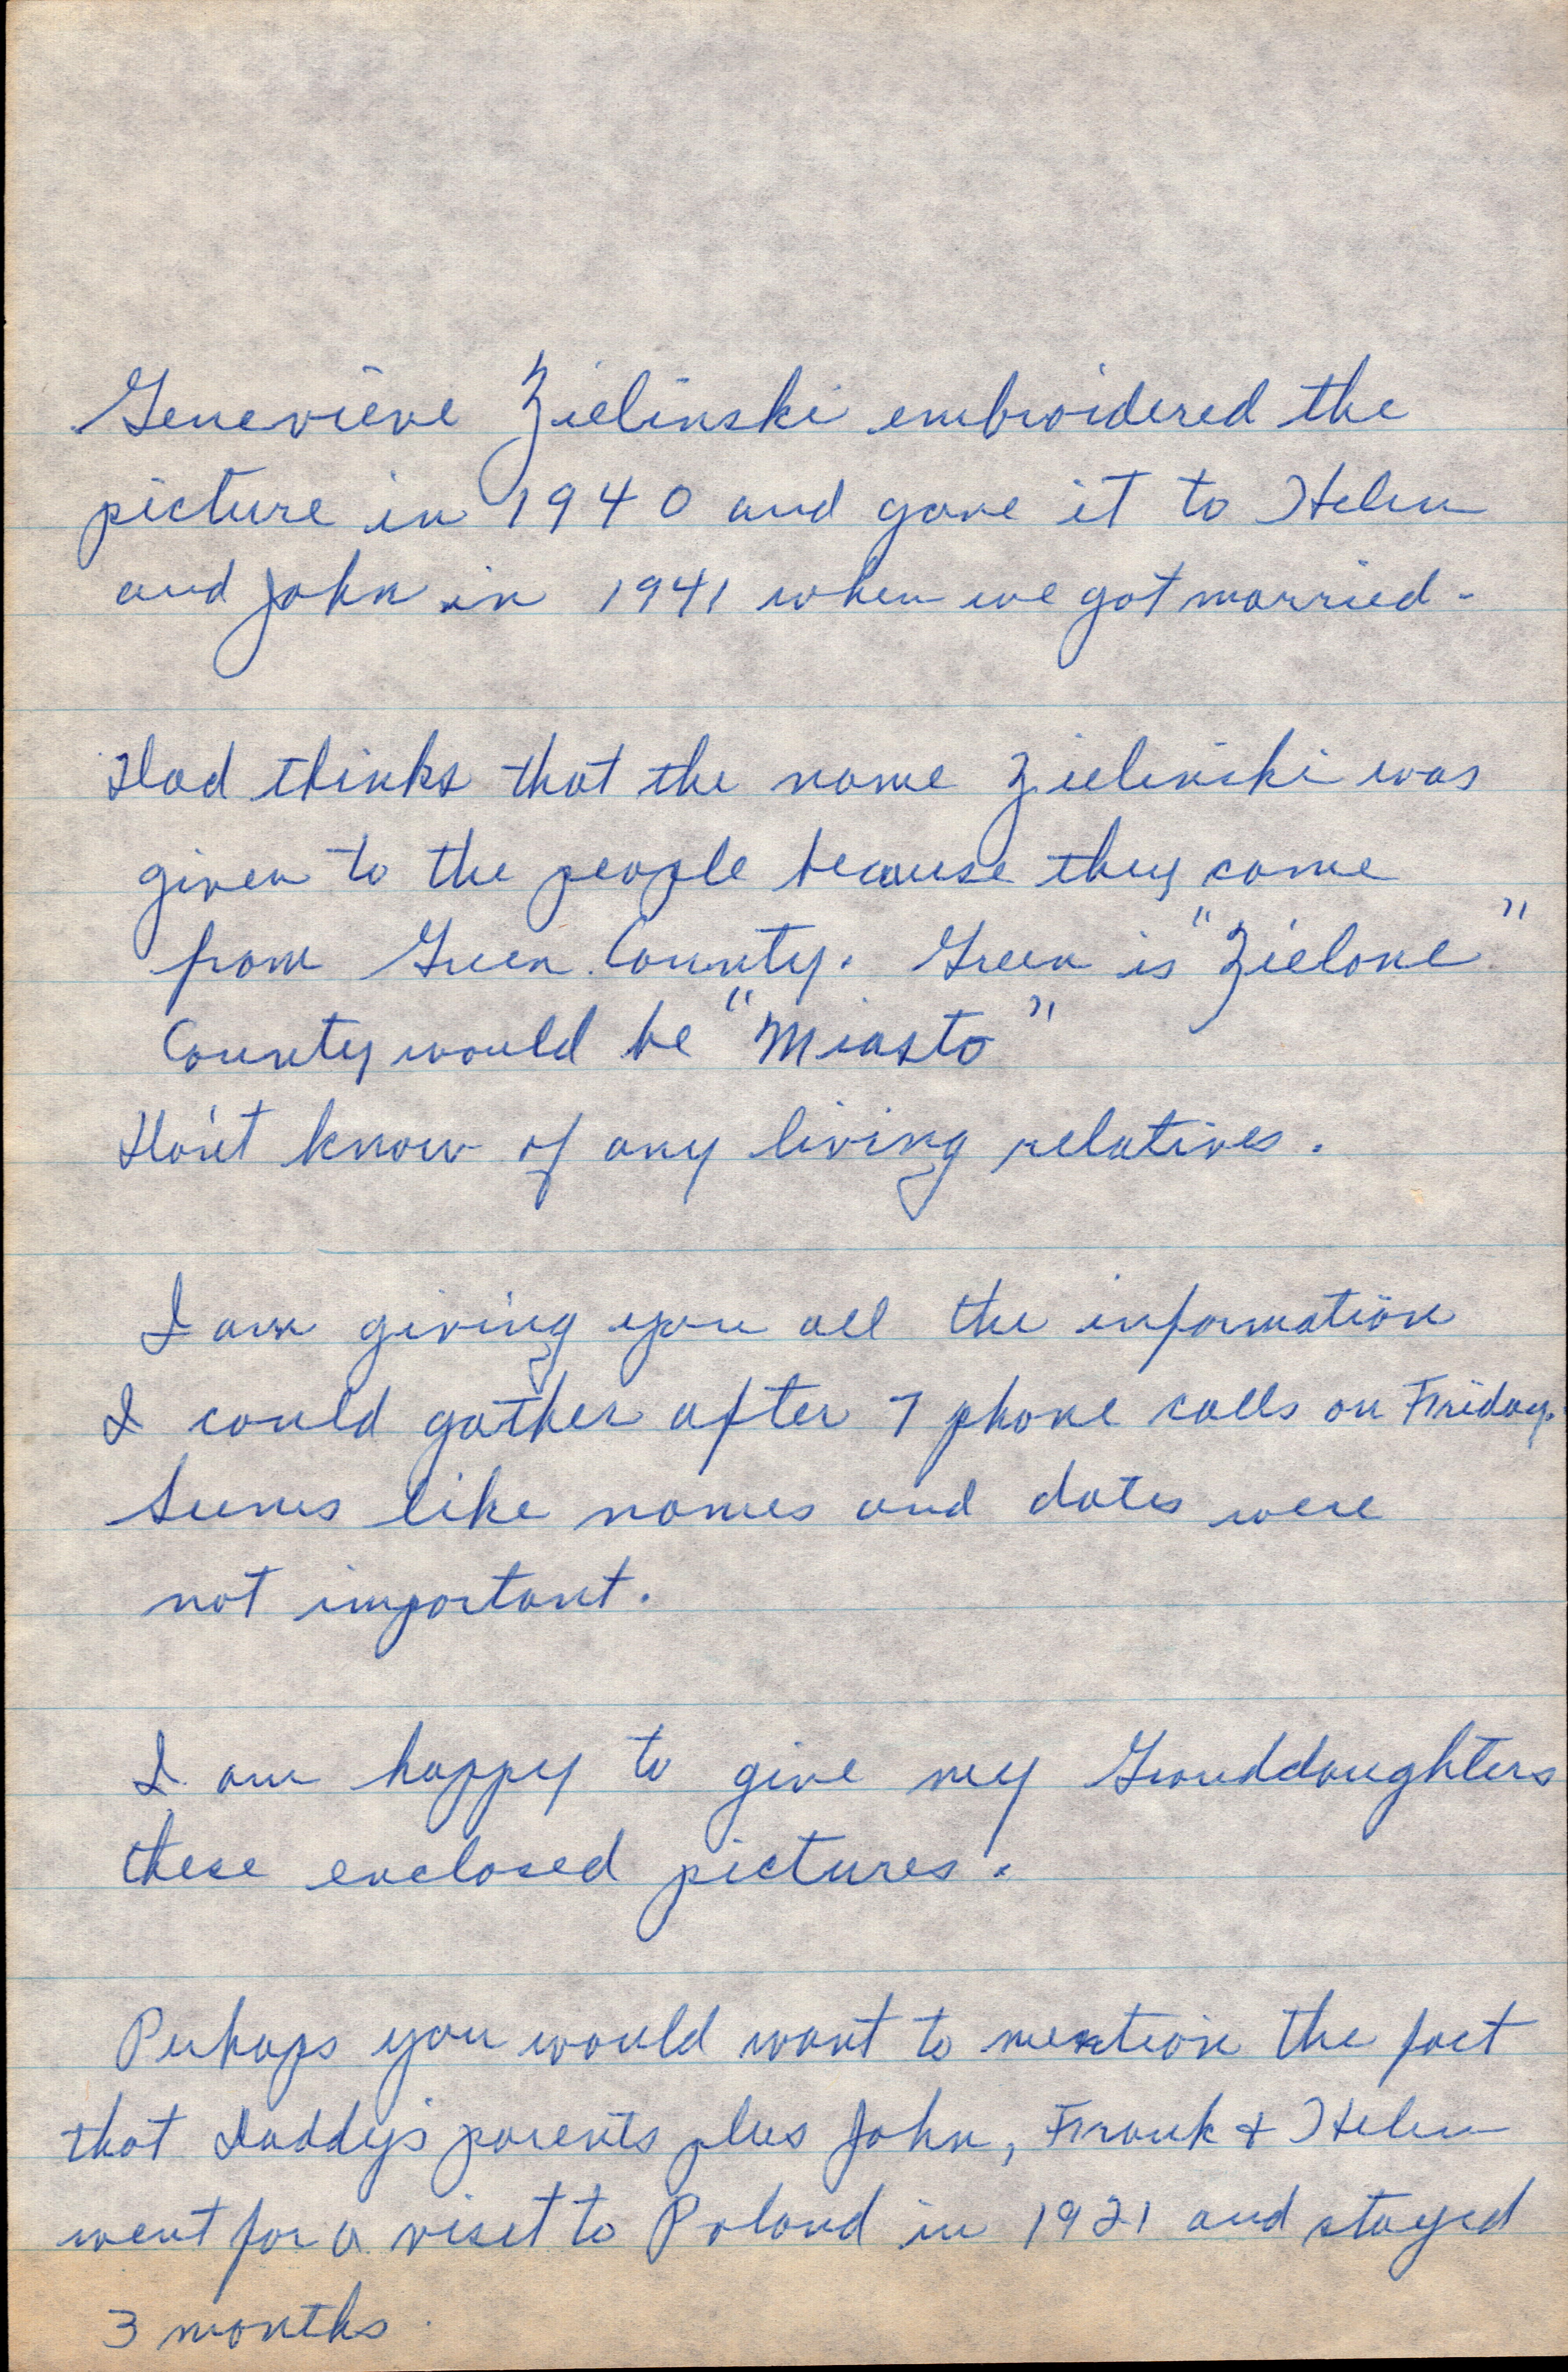 Letter from Grandma Helen 1977 page 10